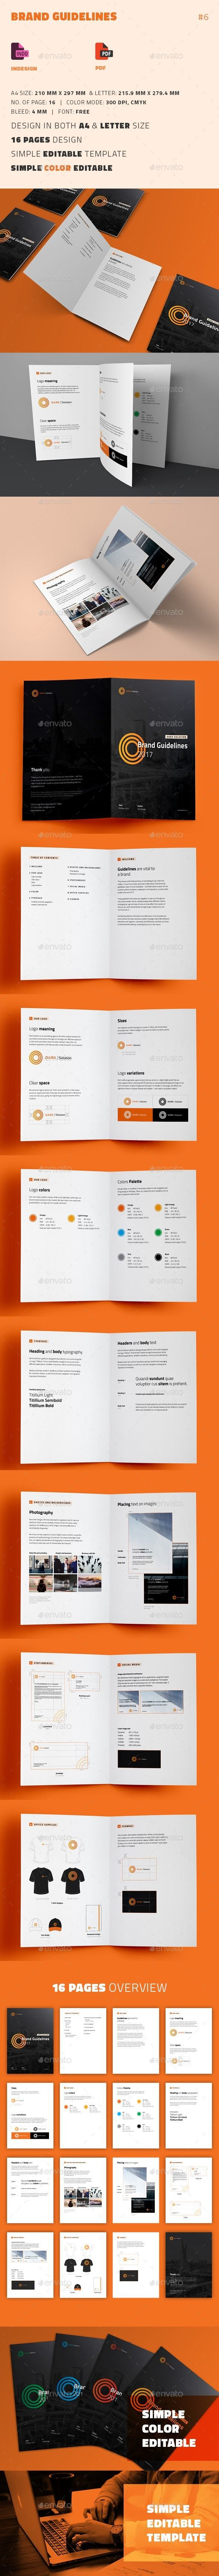 Brand Guidelines Template InDesign INDD